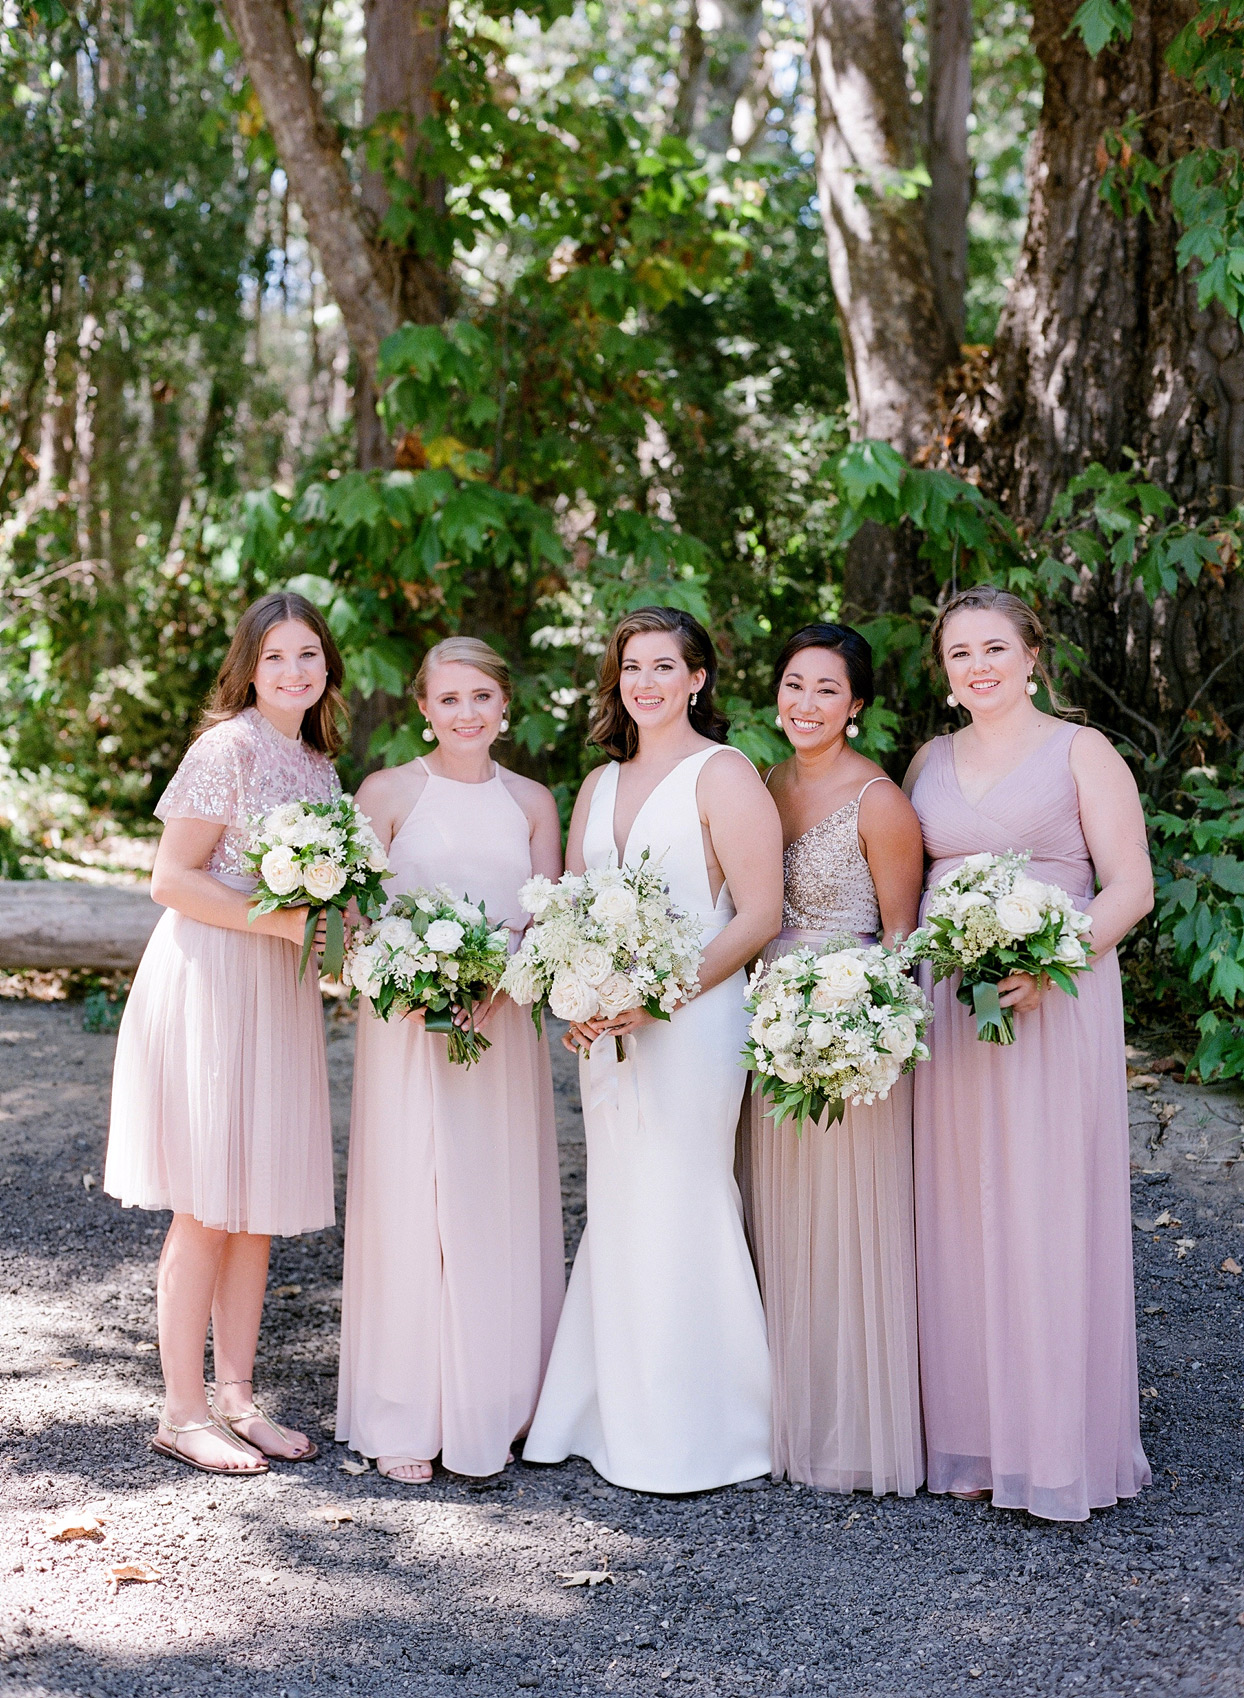 bridesmaids in various styled blush dresses standing with bride in wedding dress